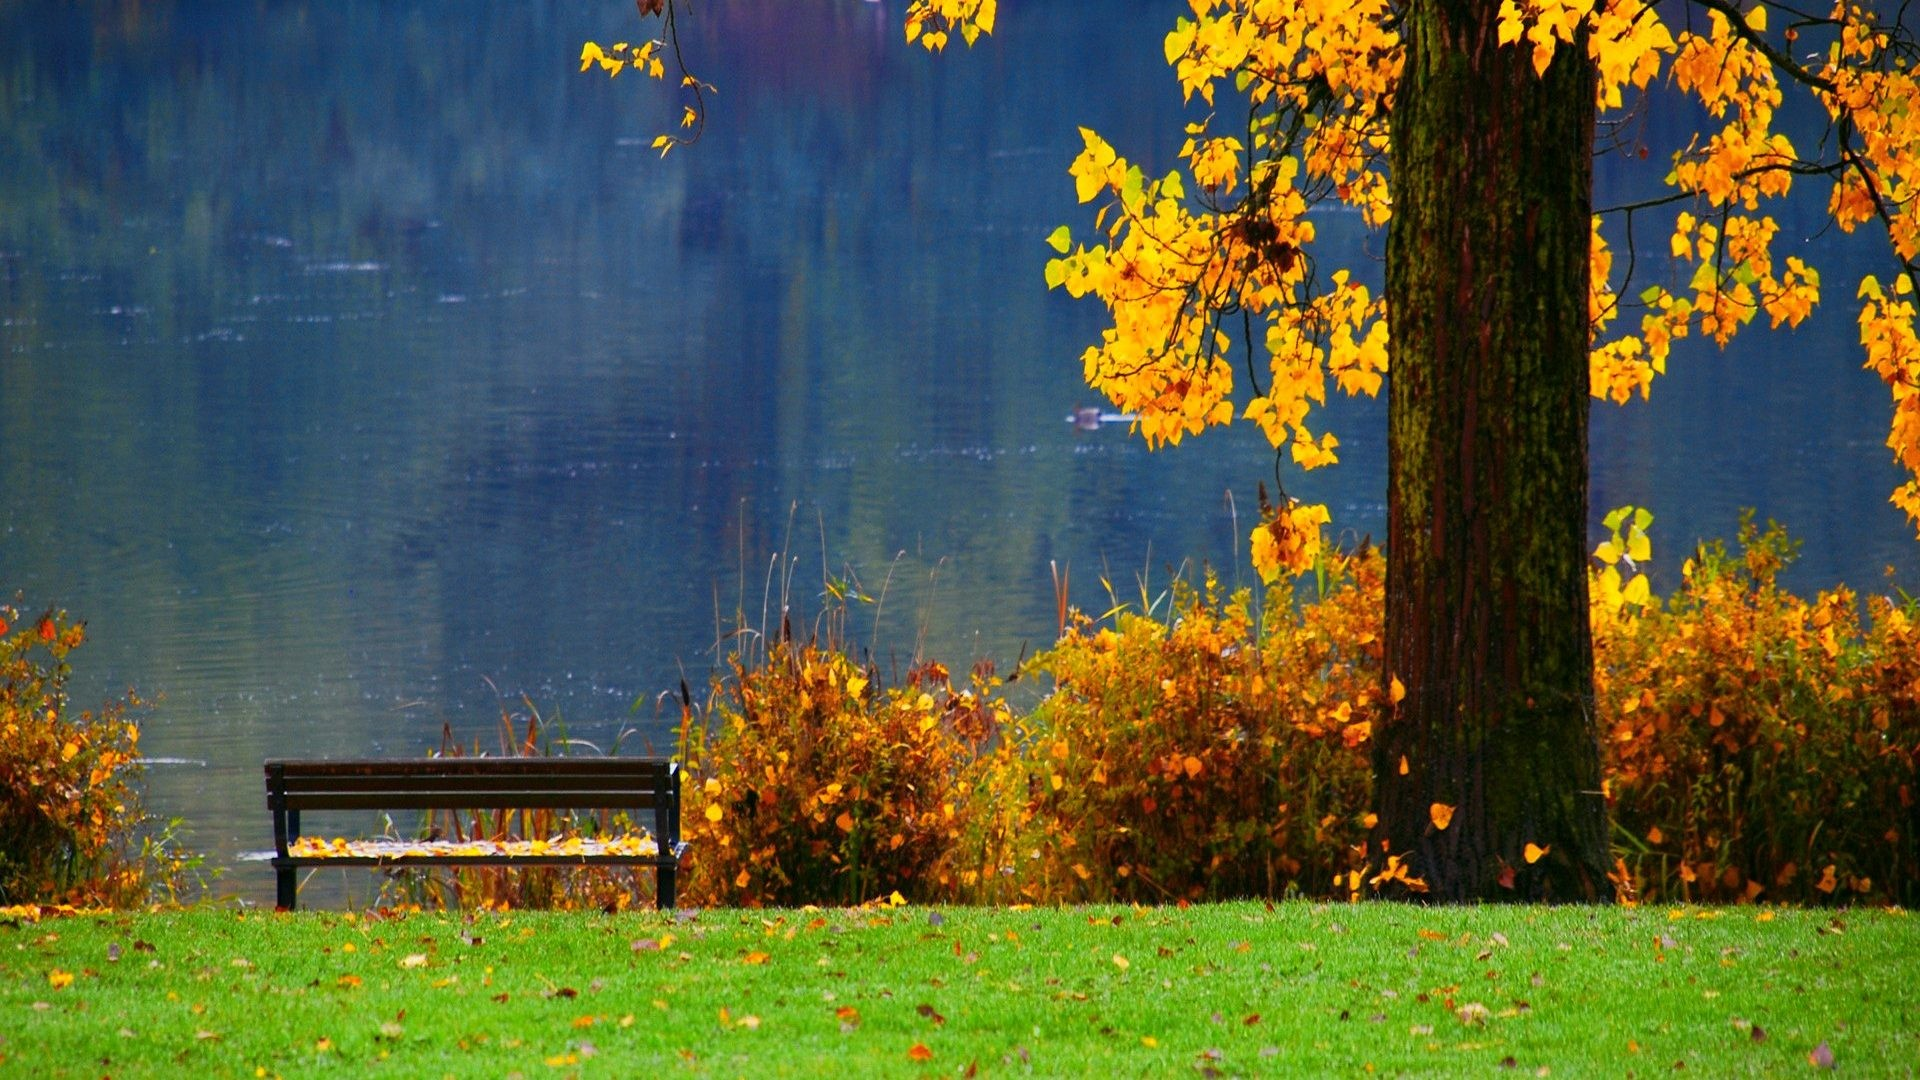 pretty fall backgrounds 51 images